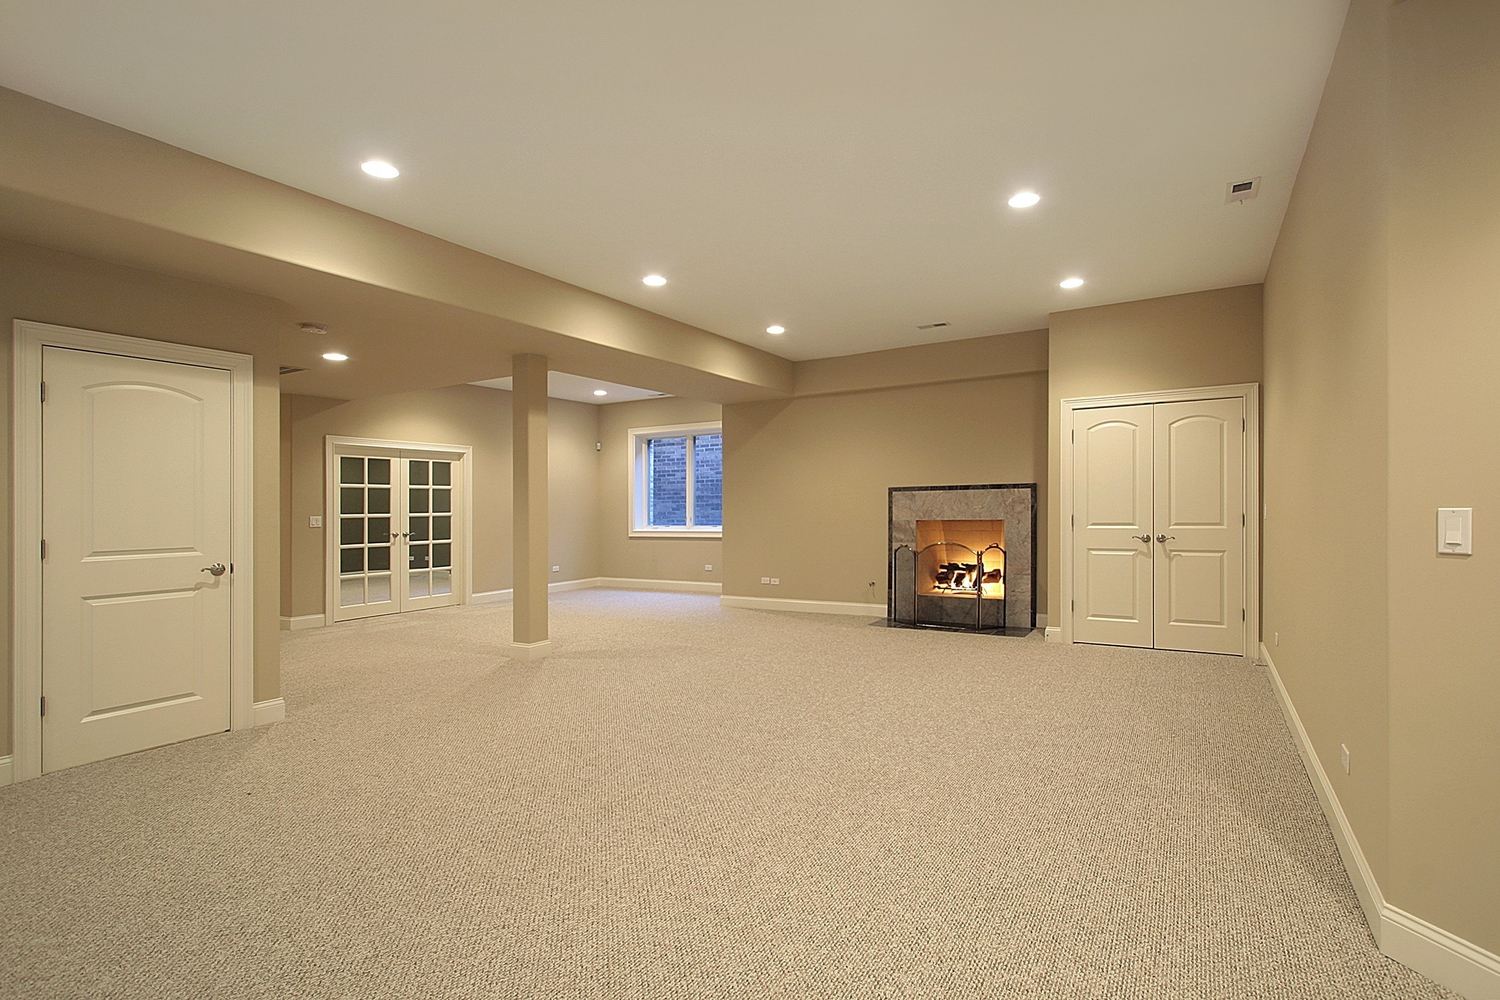 Basement finishing dutra construction everettdutra for Best carpet for basements